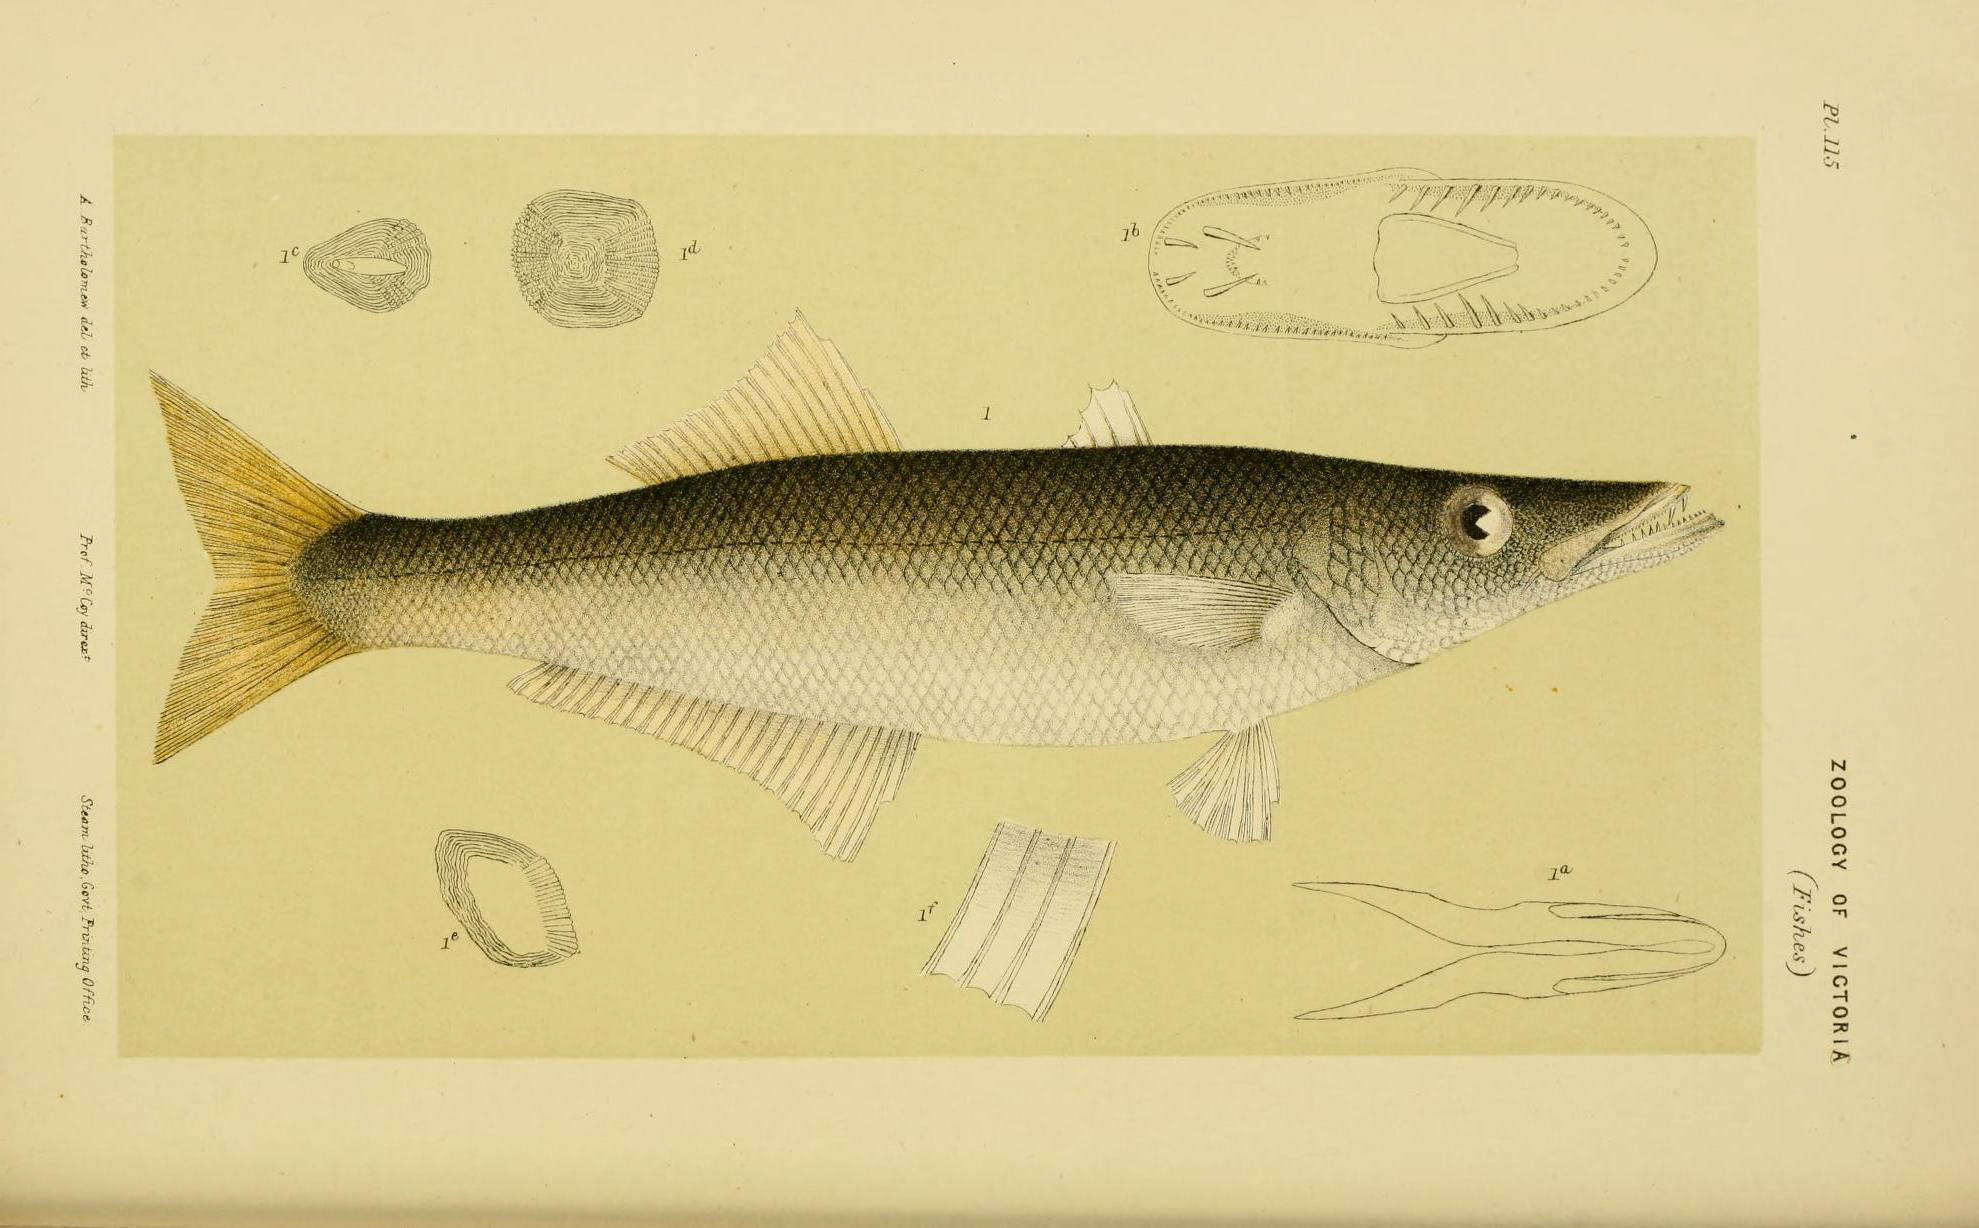 Image of Long-finned pike